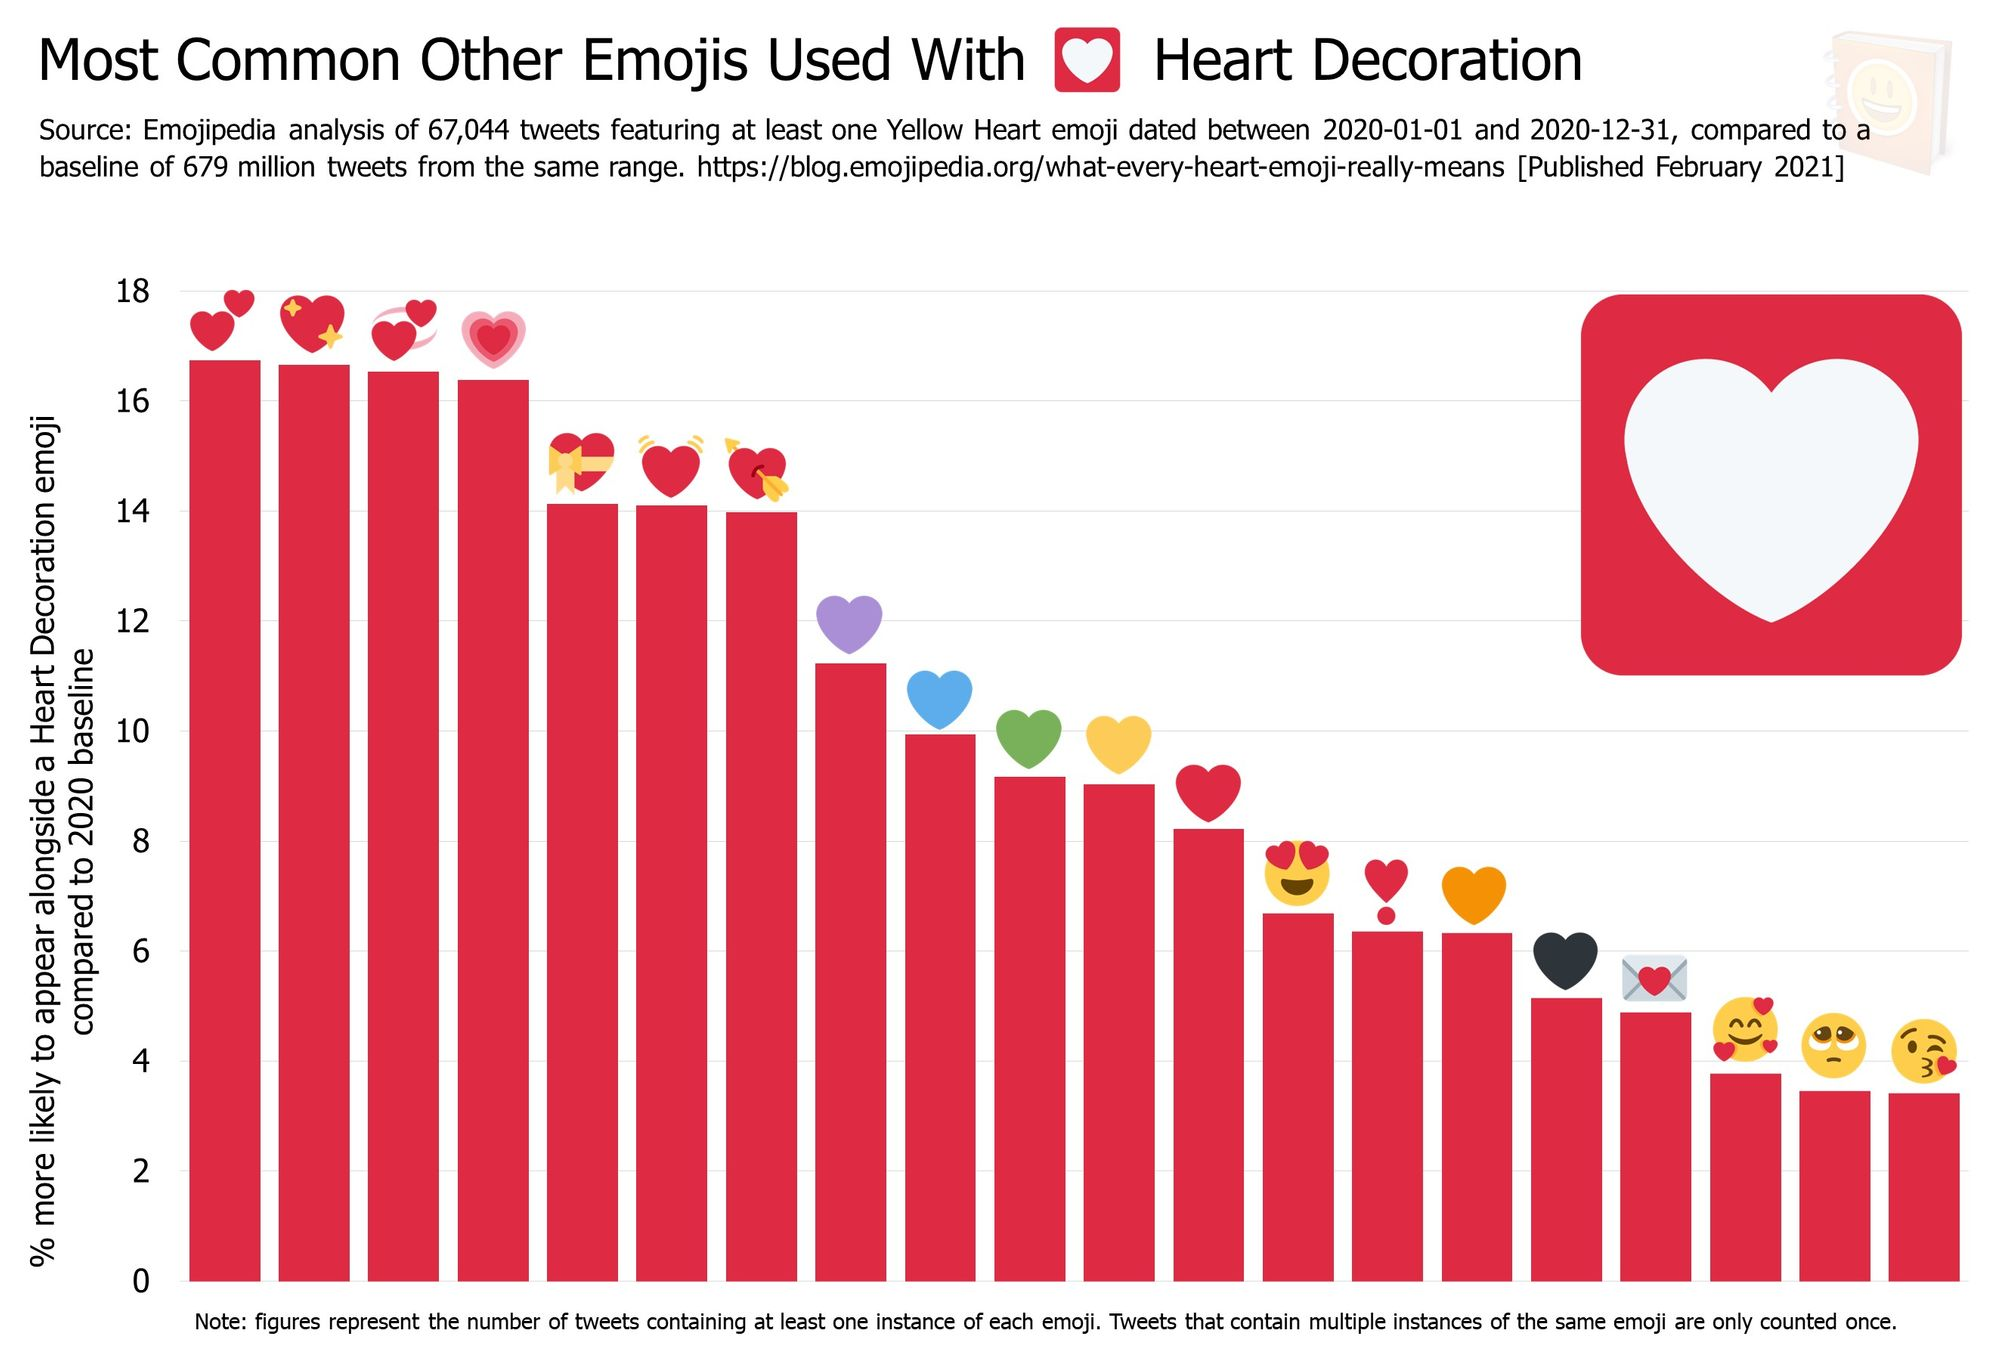 Emojipedia-Blog---What-Every-Heart-Emoji-Really-Means---Most-Common-Other-Emojis-Used-With-------Heart-Decoration